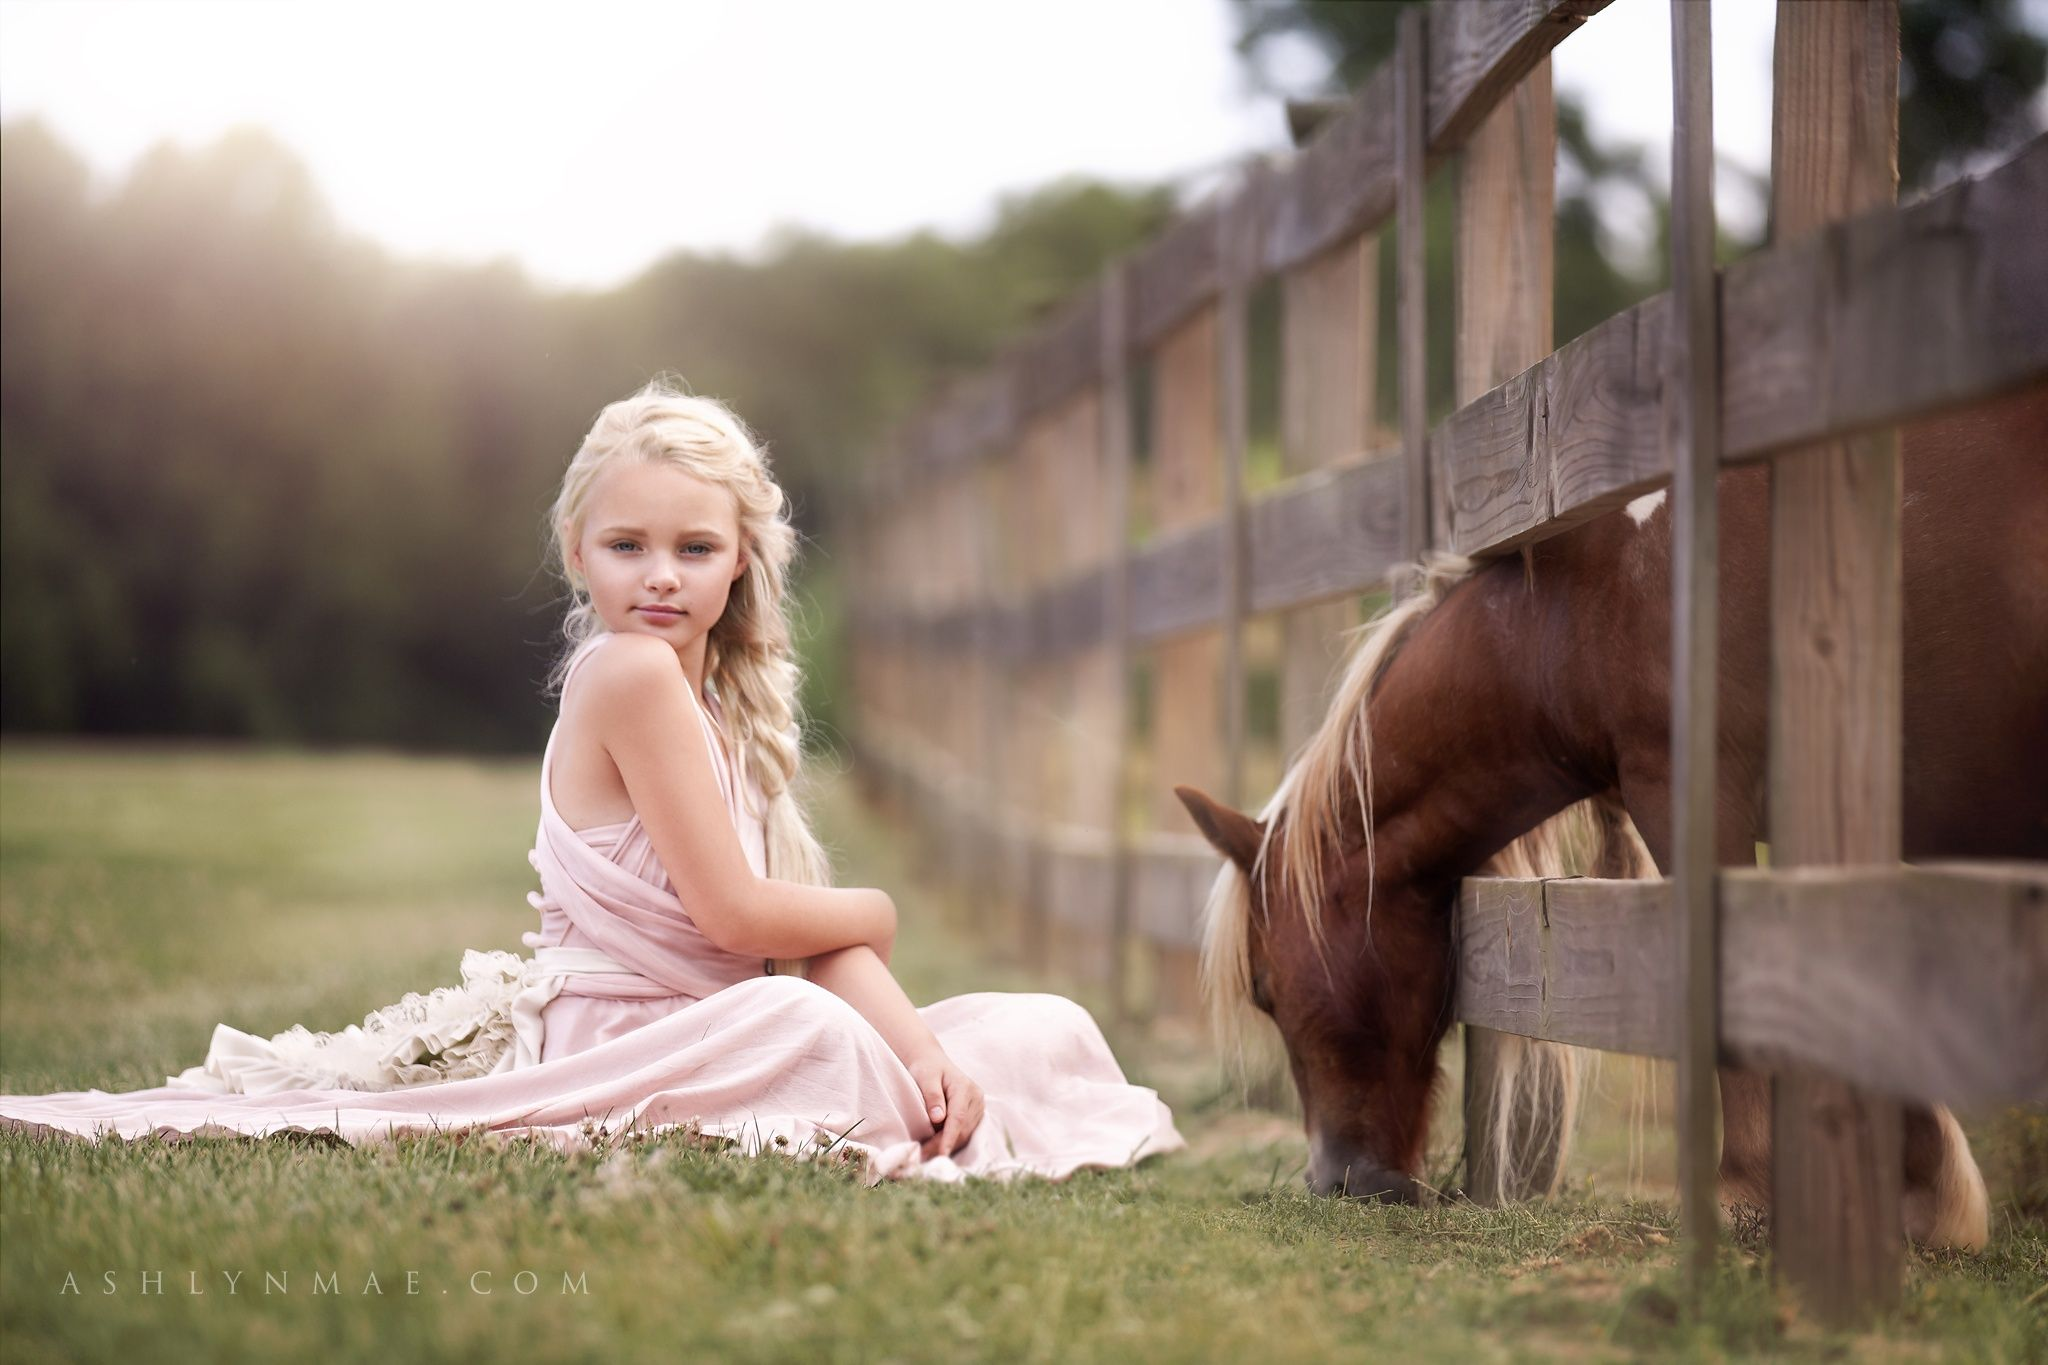 Pin By Mona Mae On Backgrounds: Photograph Girl And Horse By Ashlyn Mae Photography On